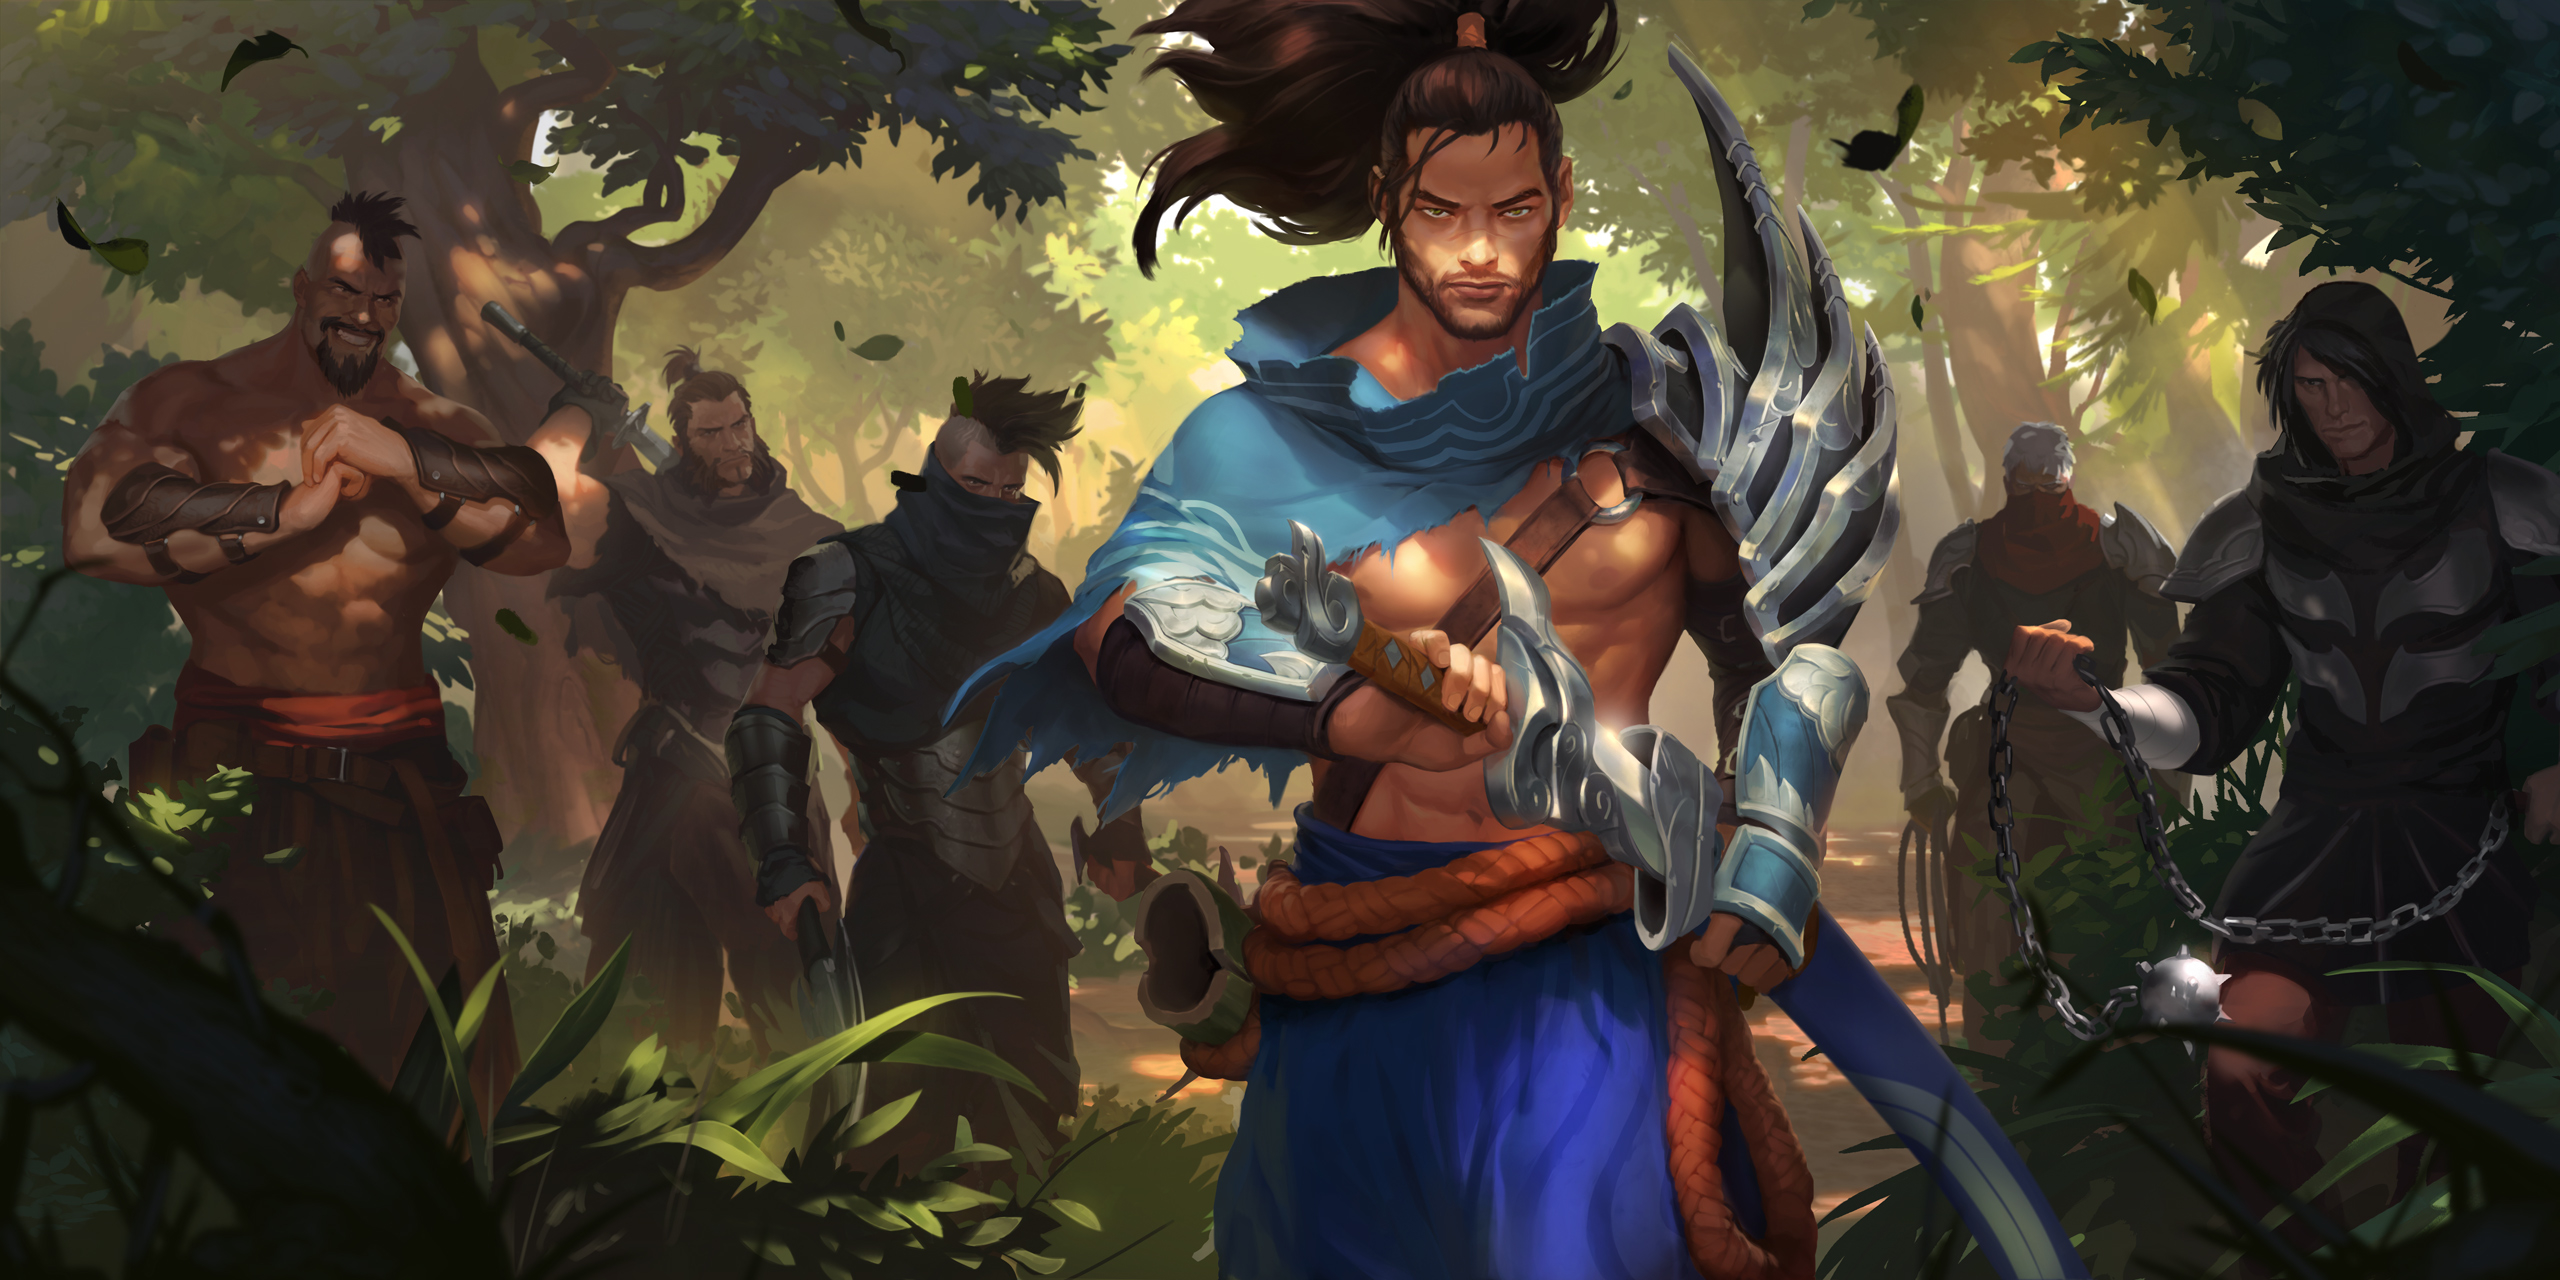 320x240 Yasuo League Of Legends Apple Iphone Ipod Touch Galaxy Ace Wallpaper Hd Games 4k Wallpapers Images Photos And Background